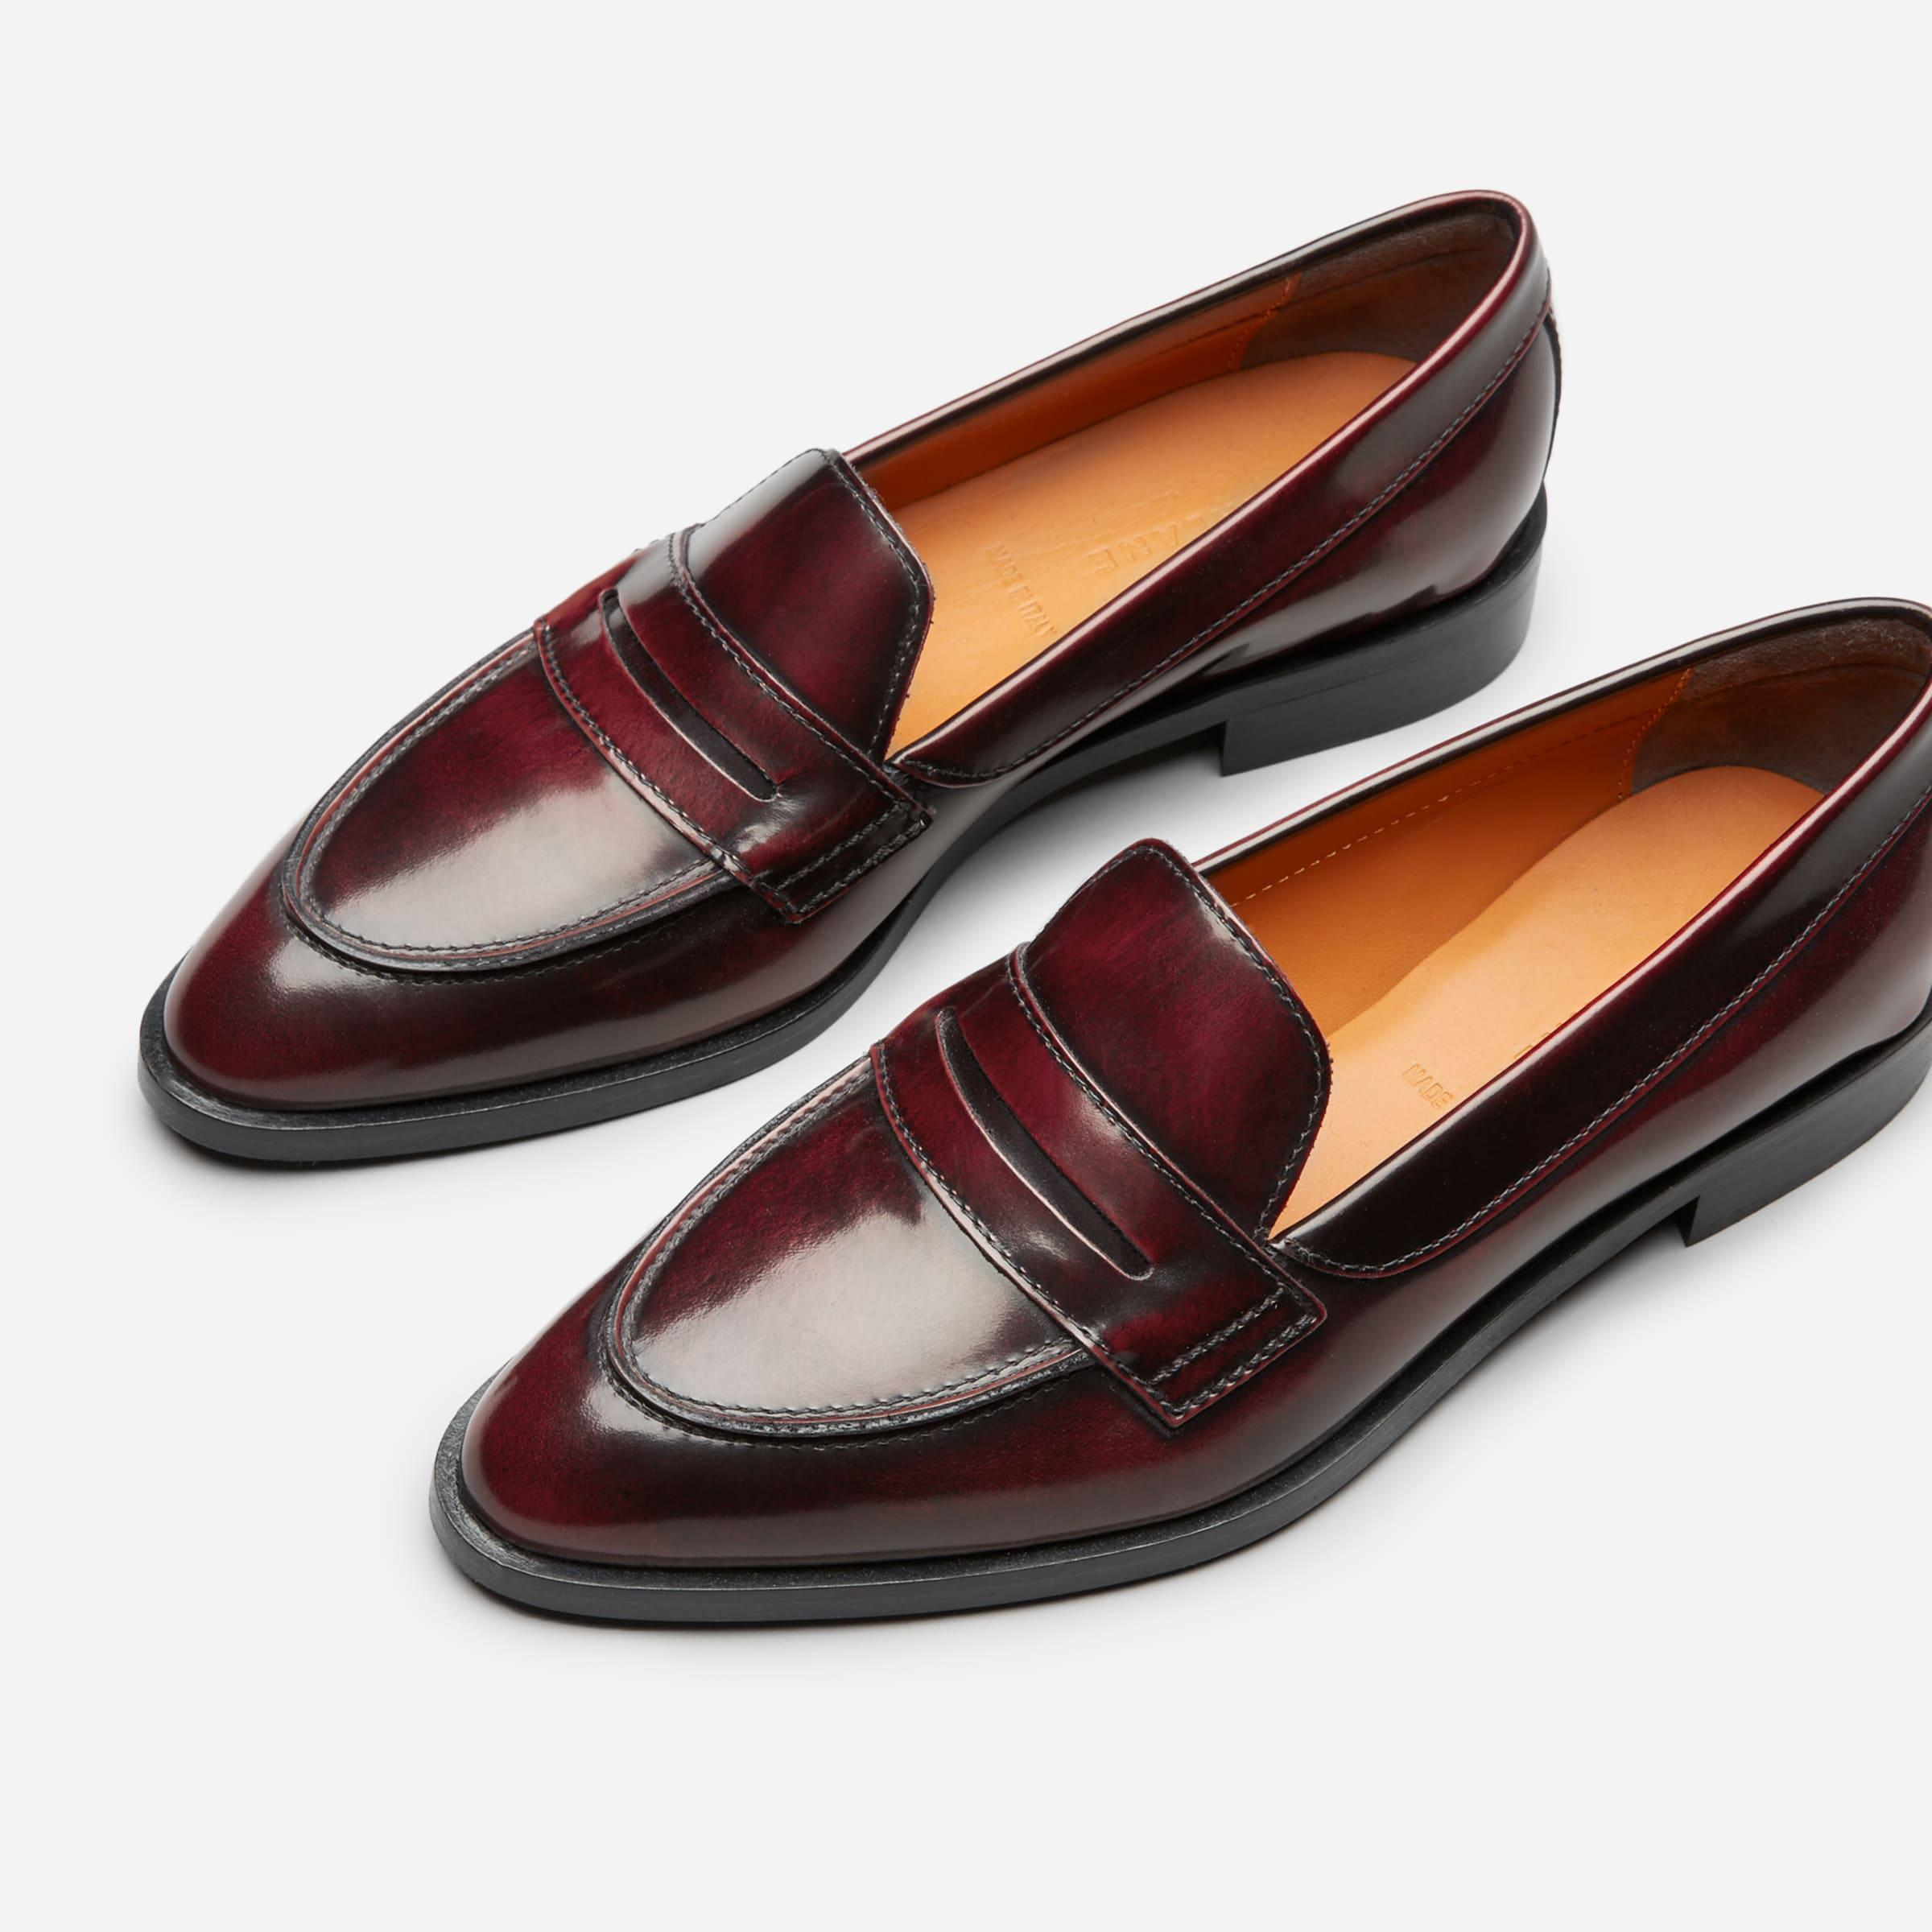 The Modern Penny Loafer 2